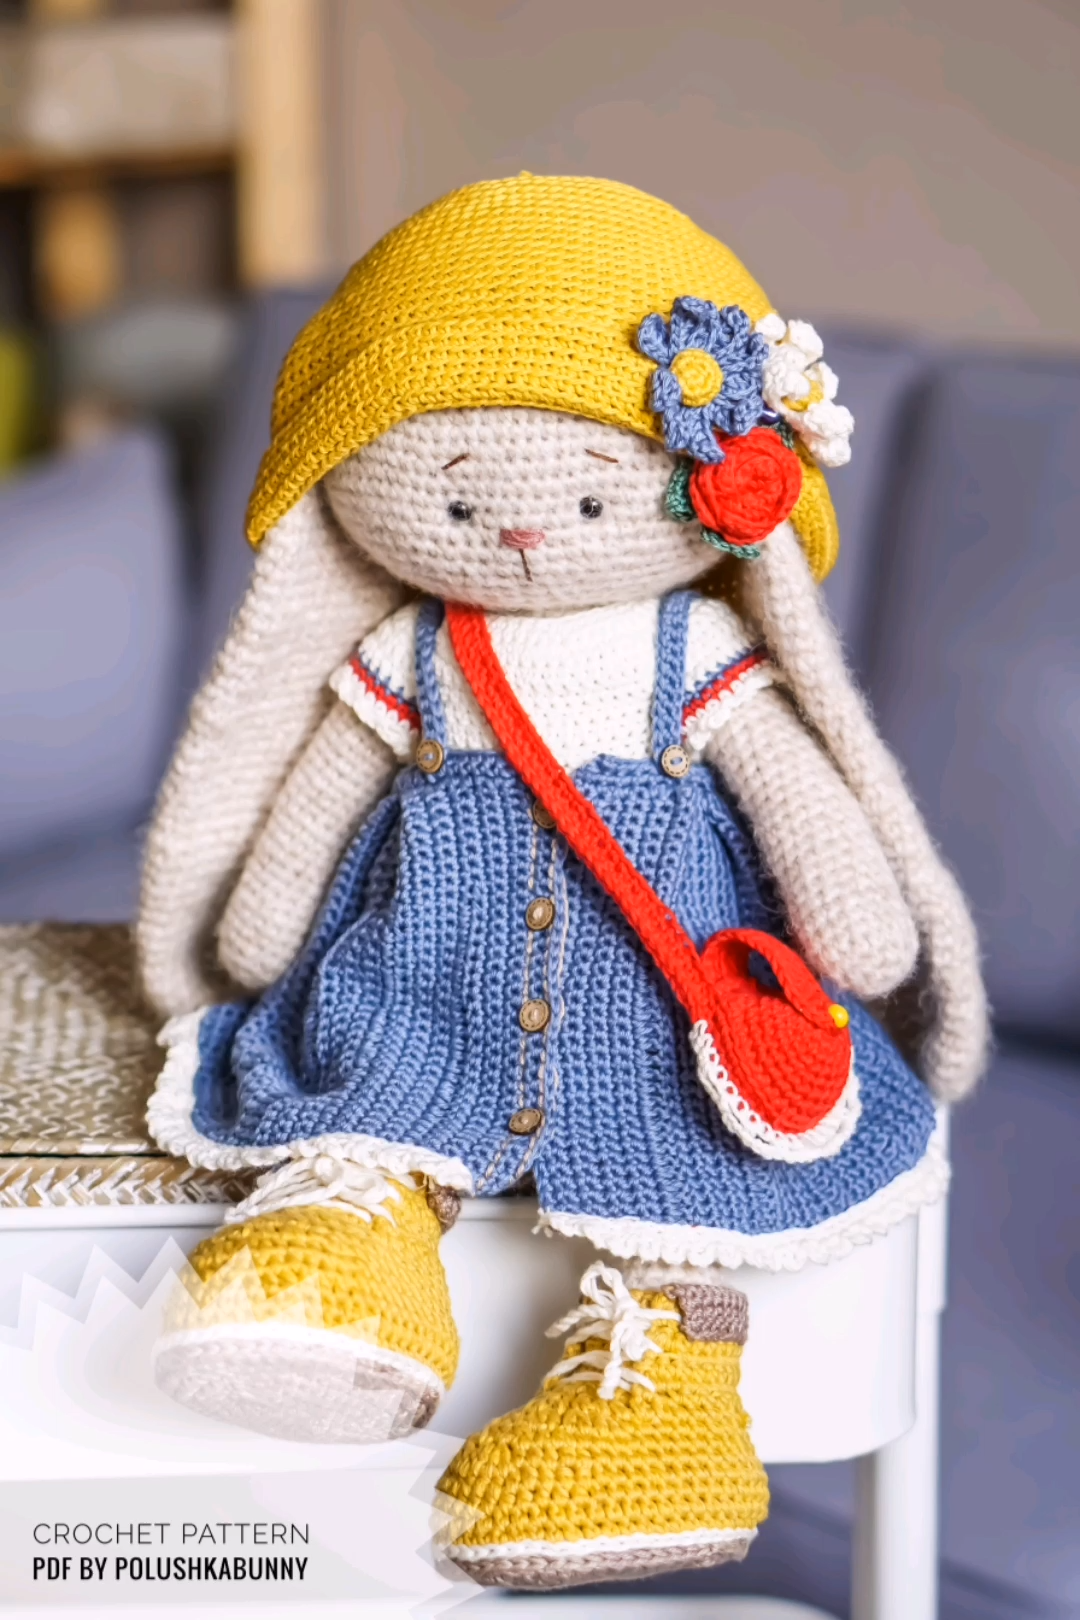 """Photo of Crochet Pattern Outfit """"Kylie"""" for Bunny Toy by Polushkabunny #crochet #pattern #bunny #outfit #diy"""